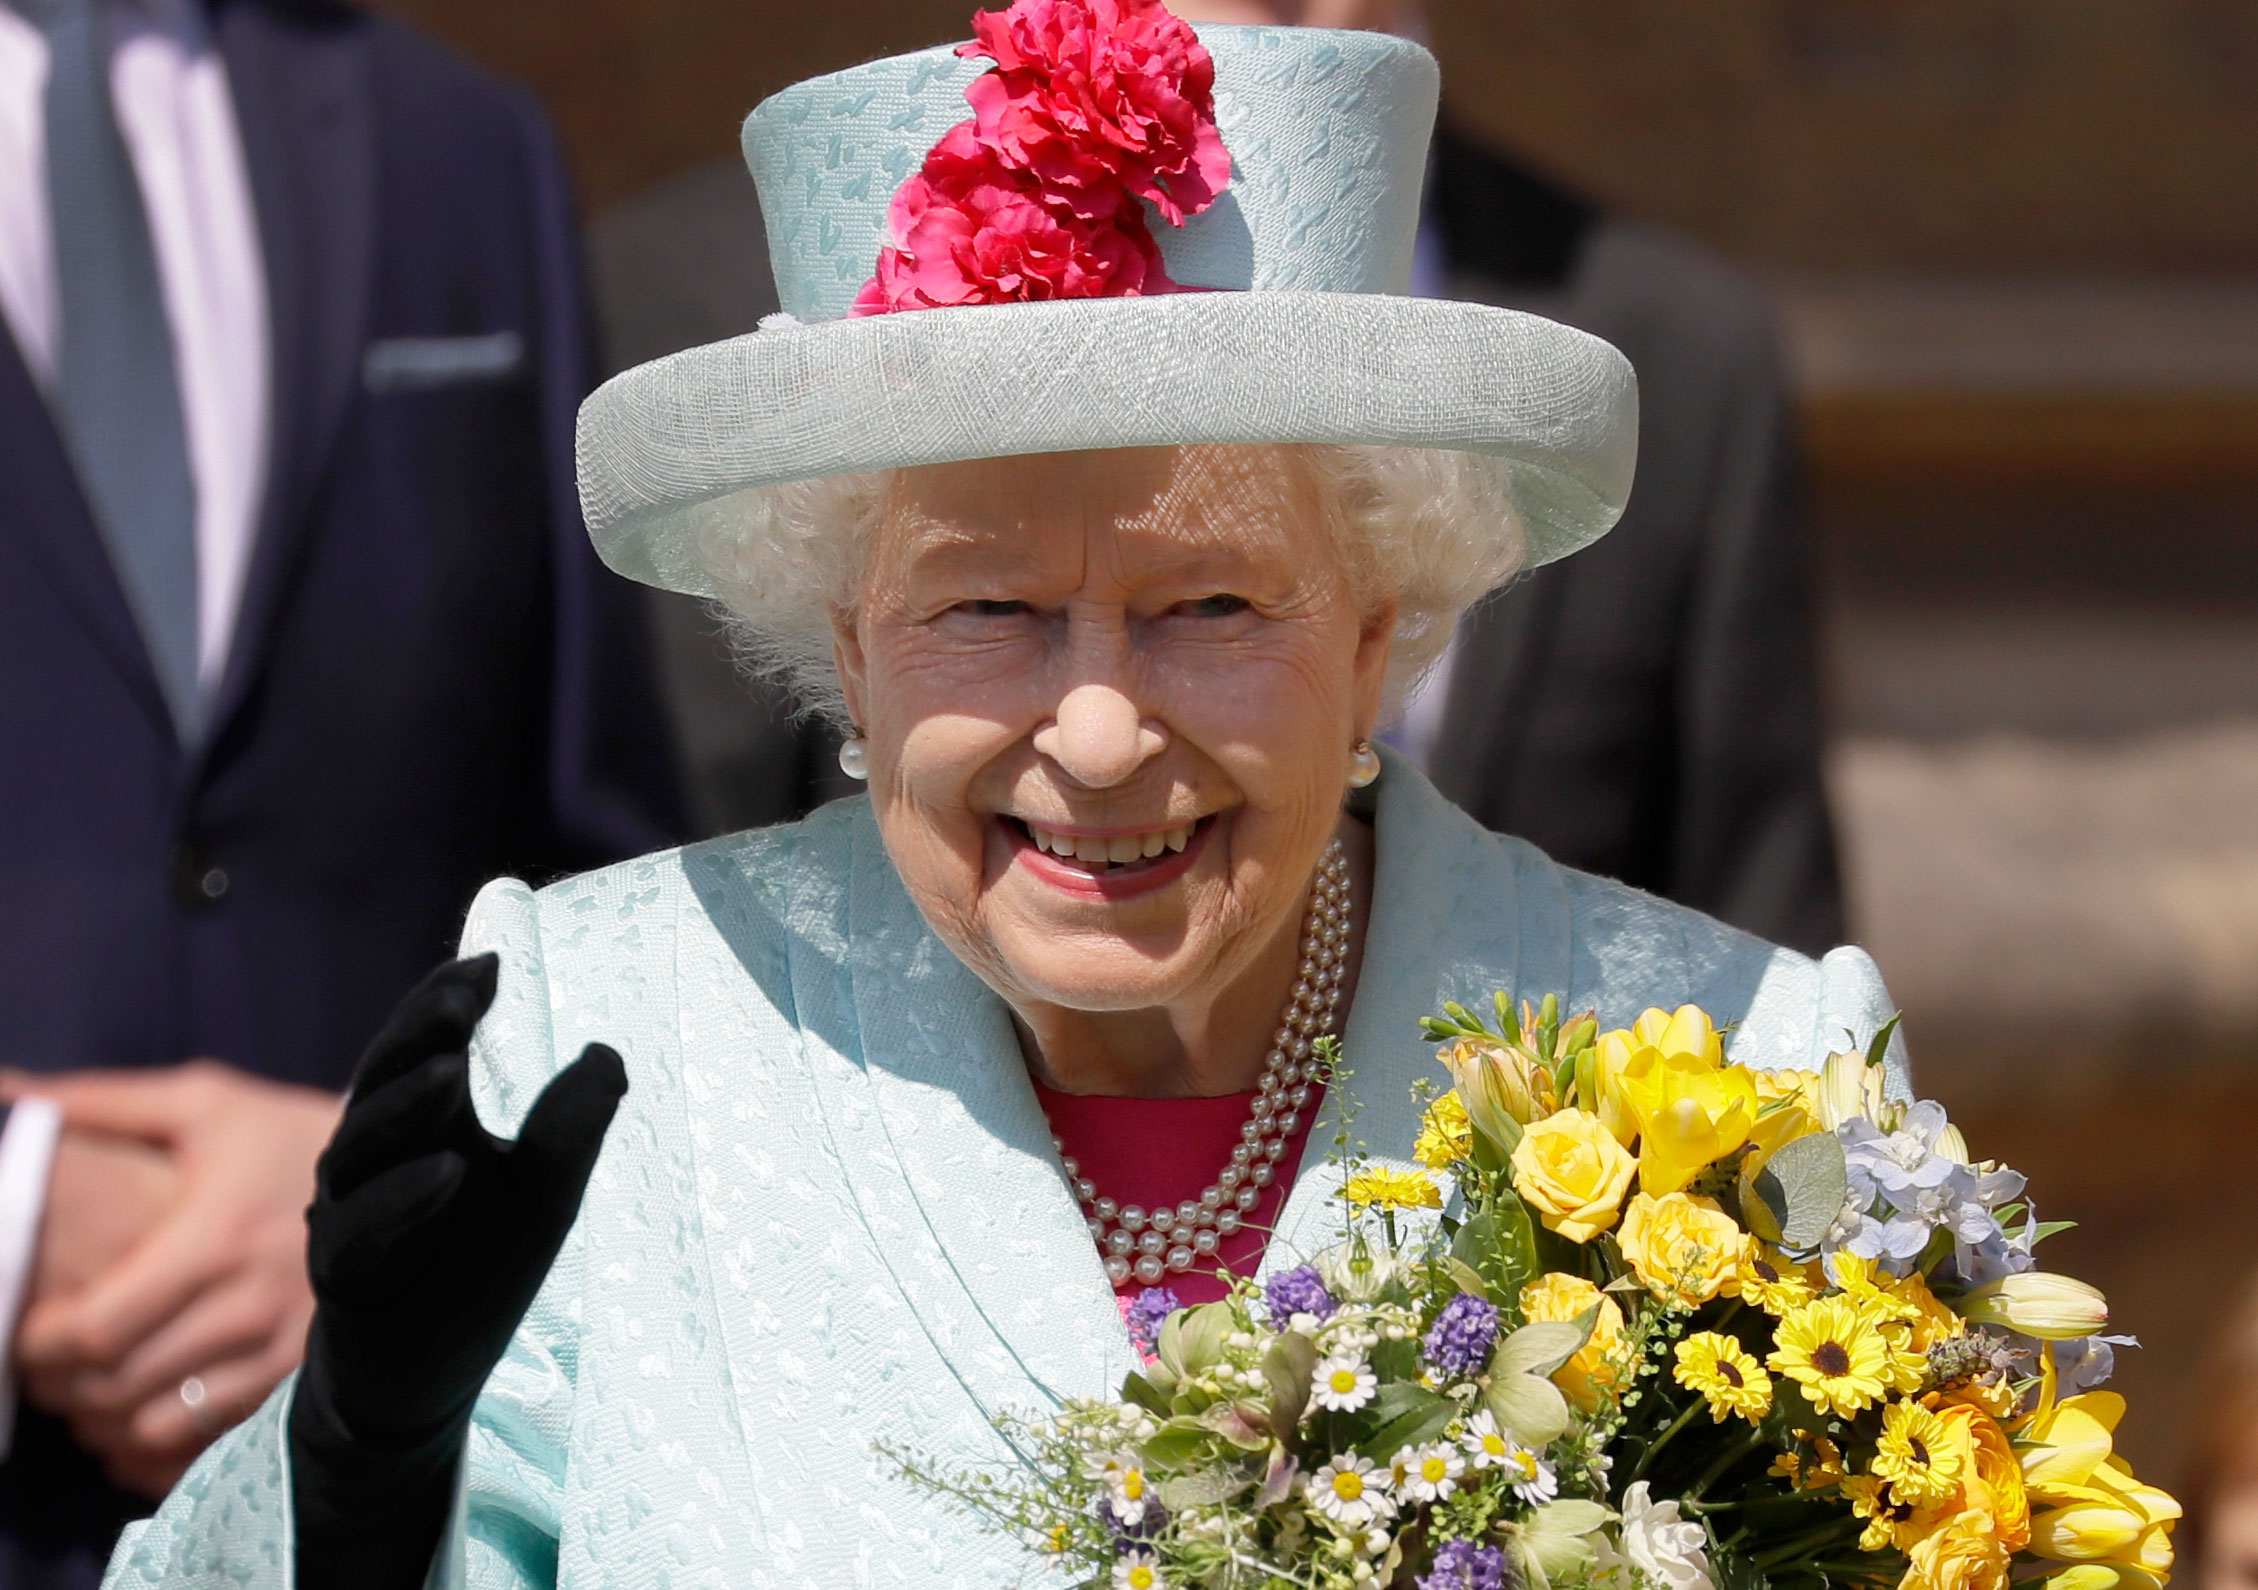 Queen Elizabeth II Royal Family Celebrate Easter - The queen beamed as she entered the chapel on her birthday.